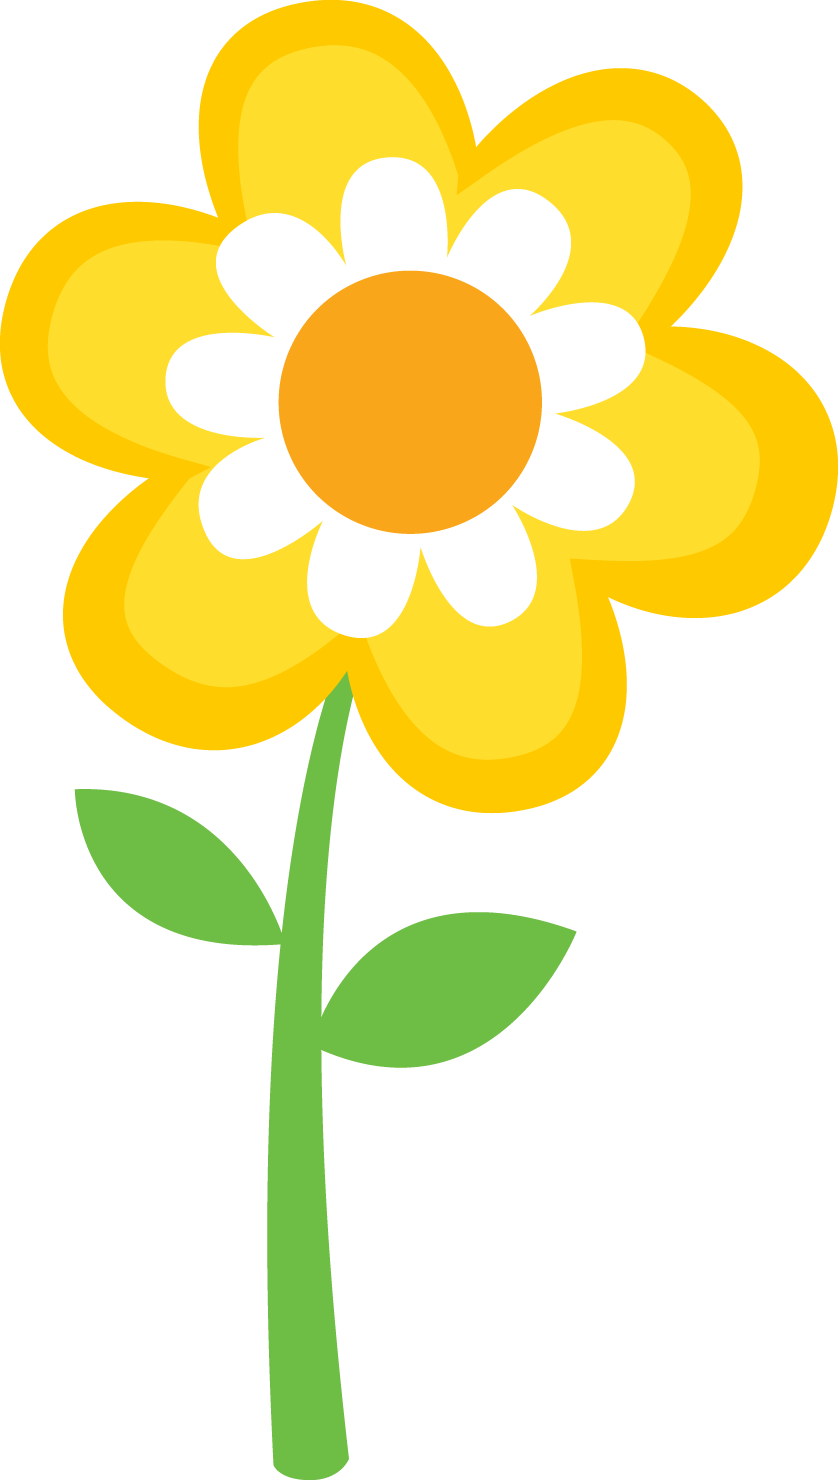 Flower clipart rainbow. I rgqup koqy png